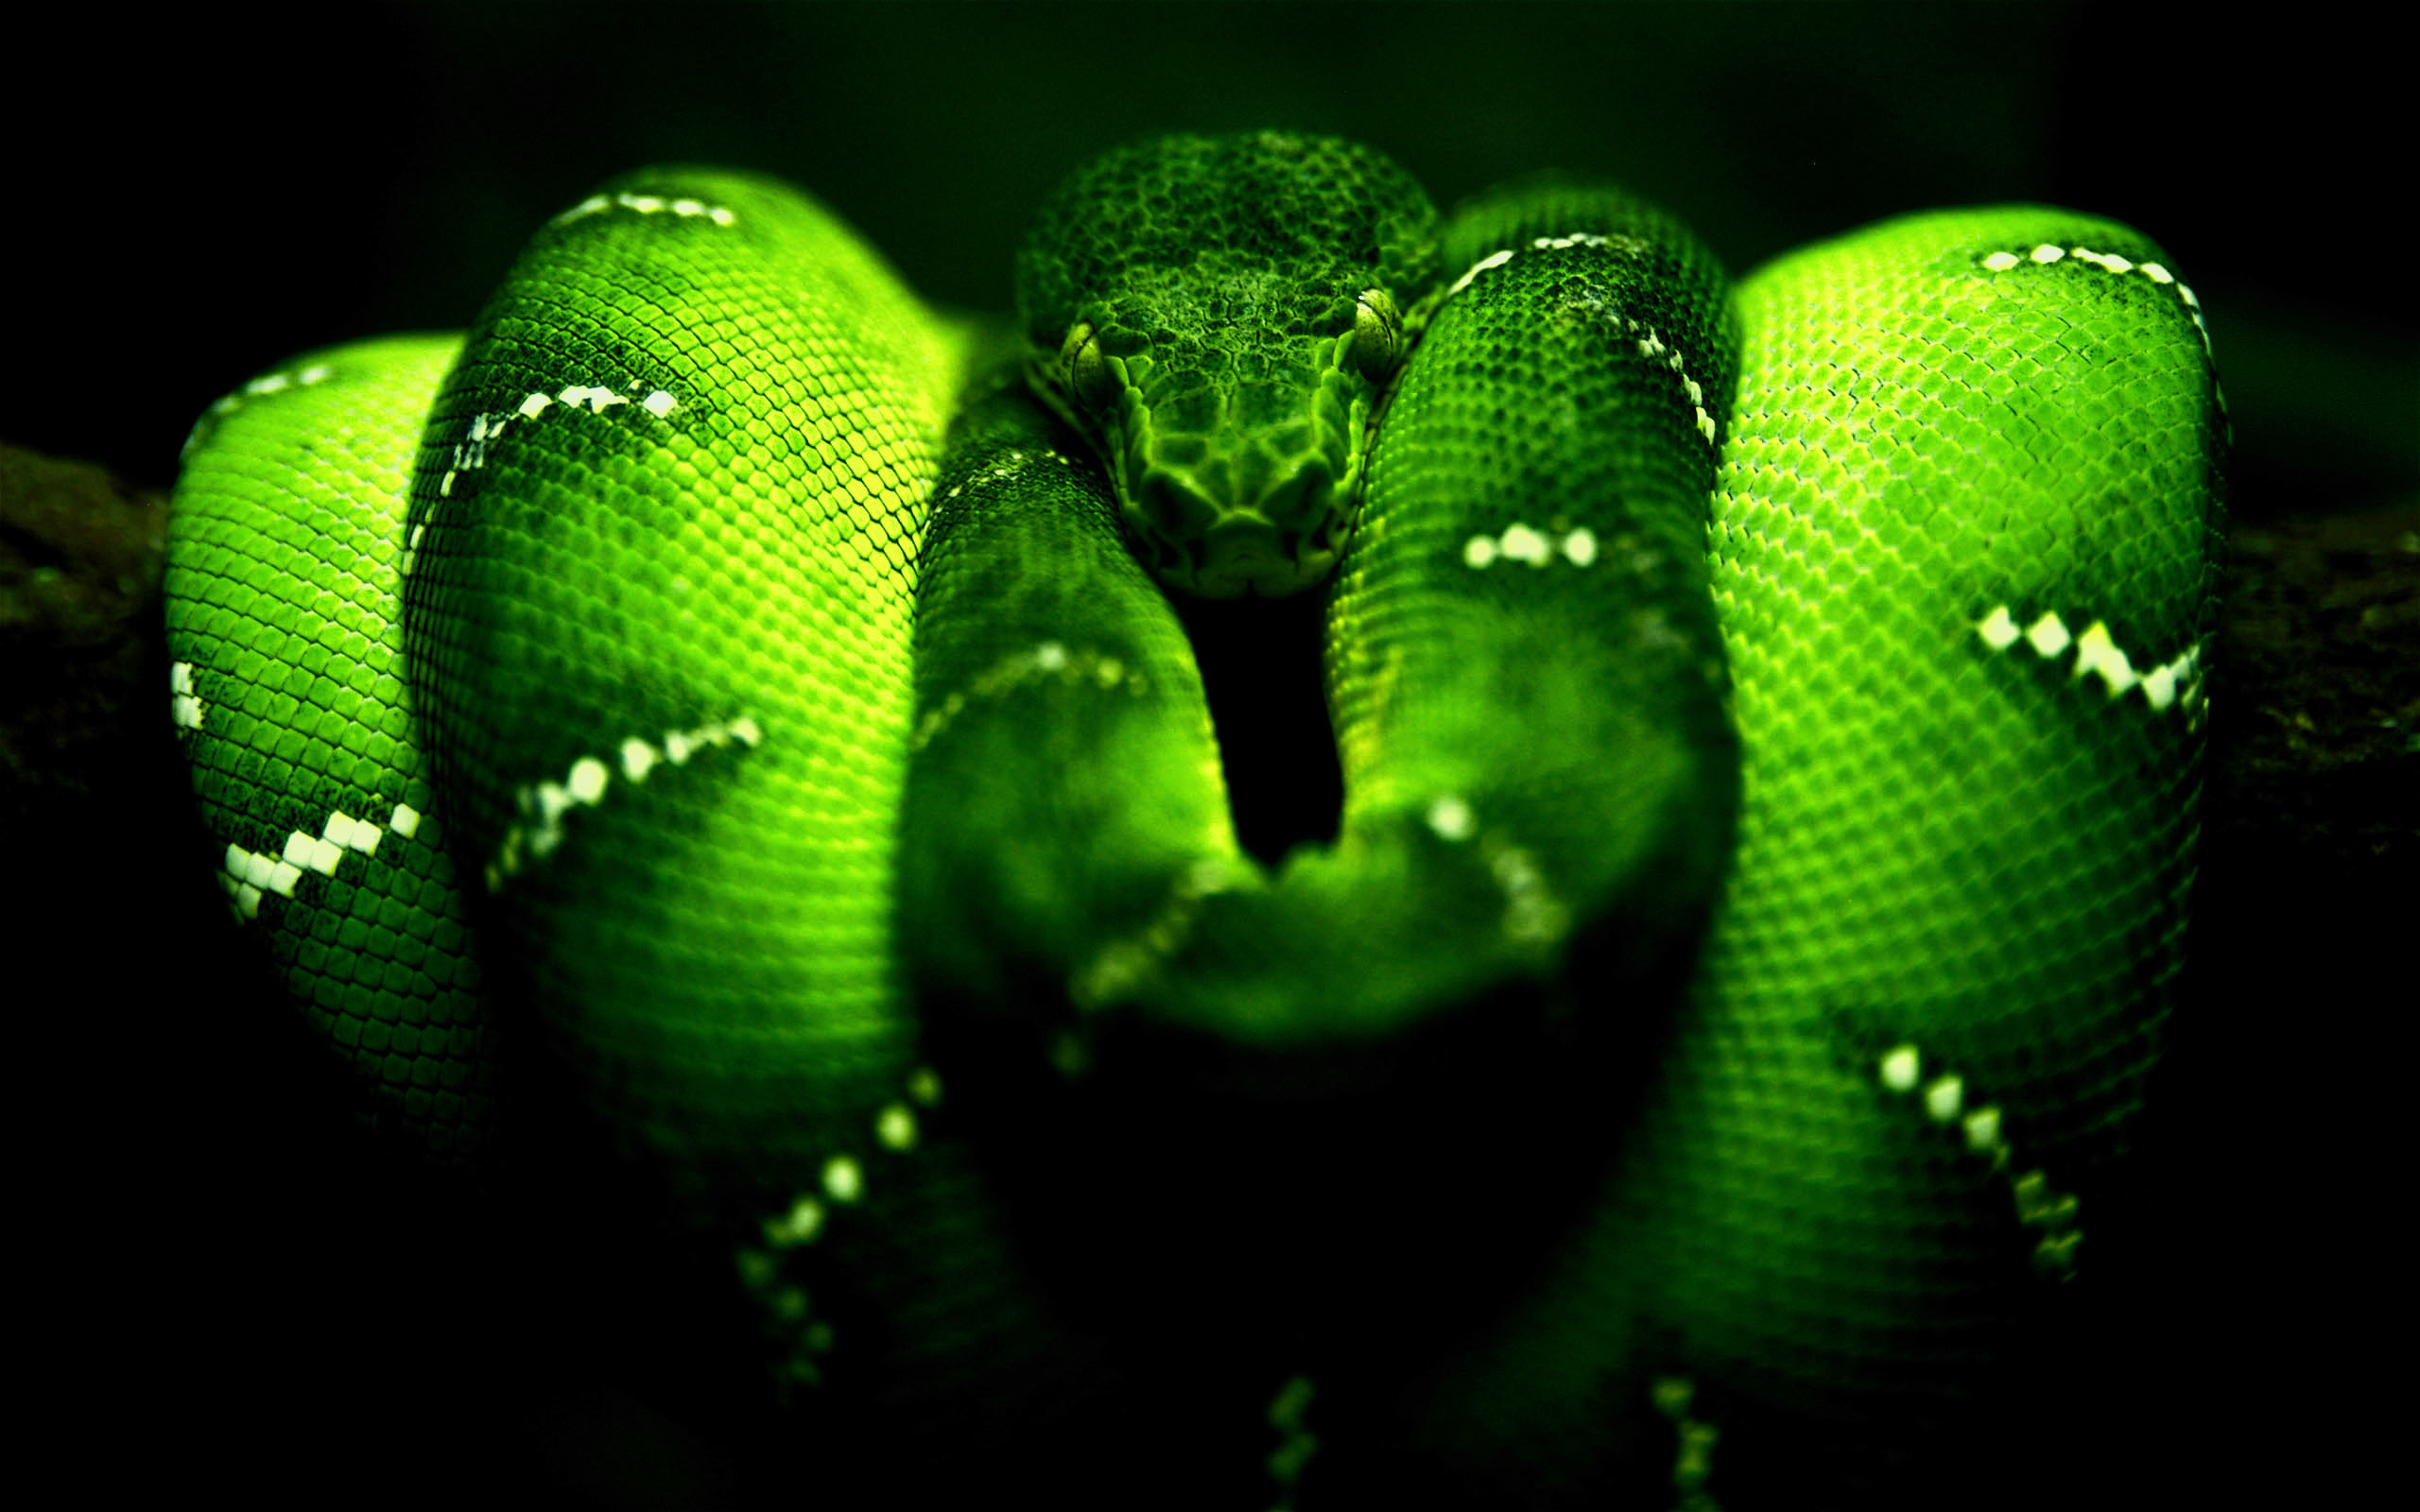 2560x1600 Neon Green Snake 1080p Wallpaperscom